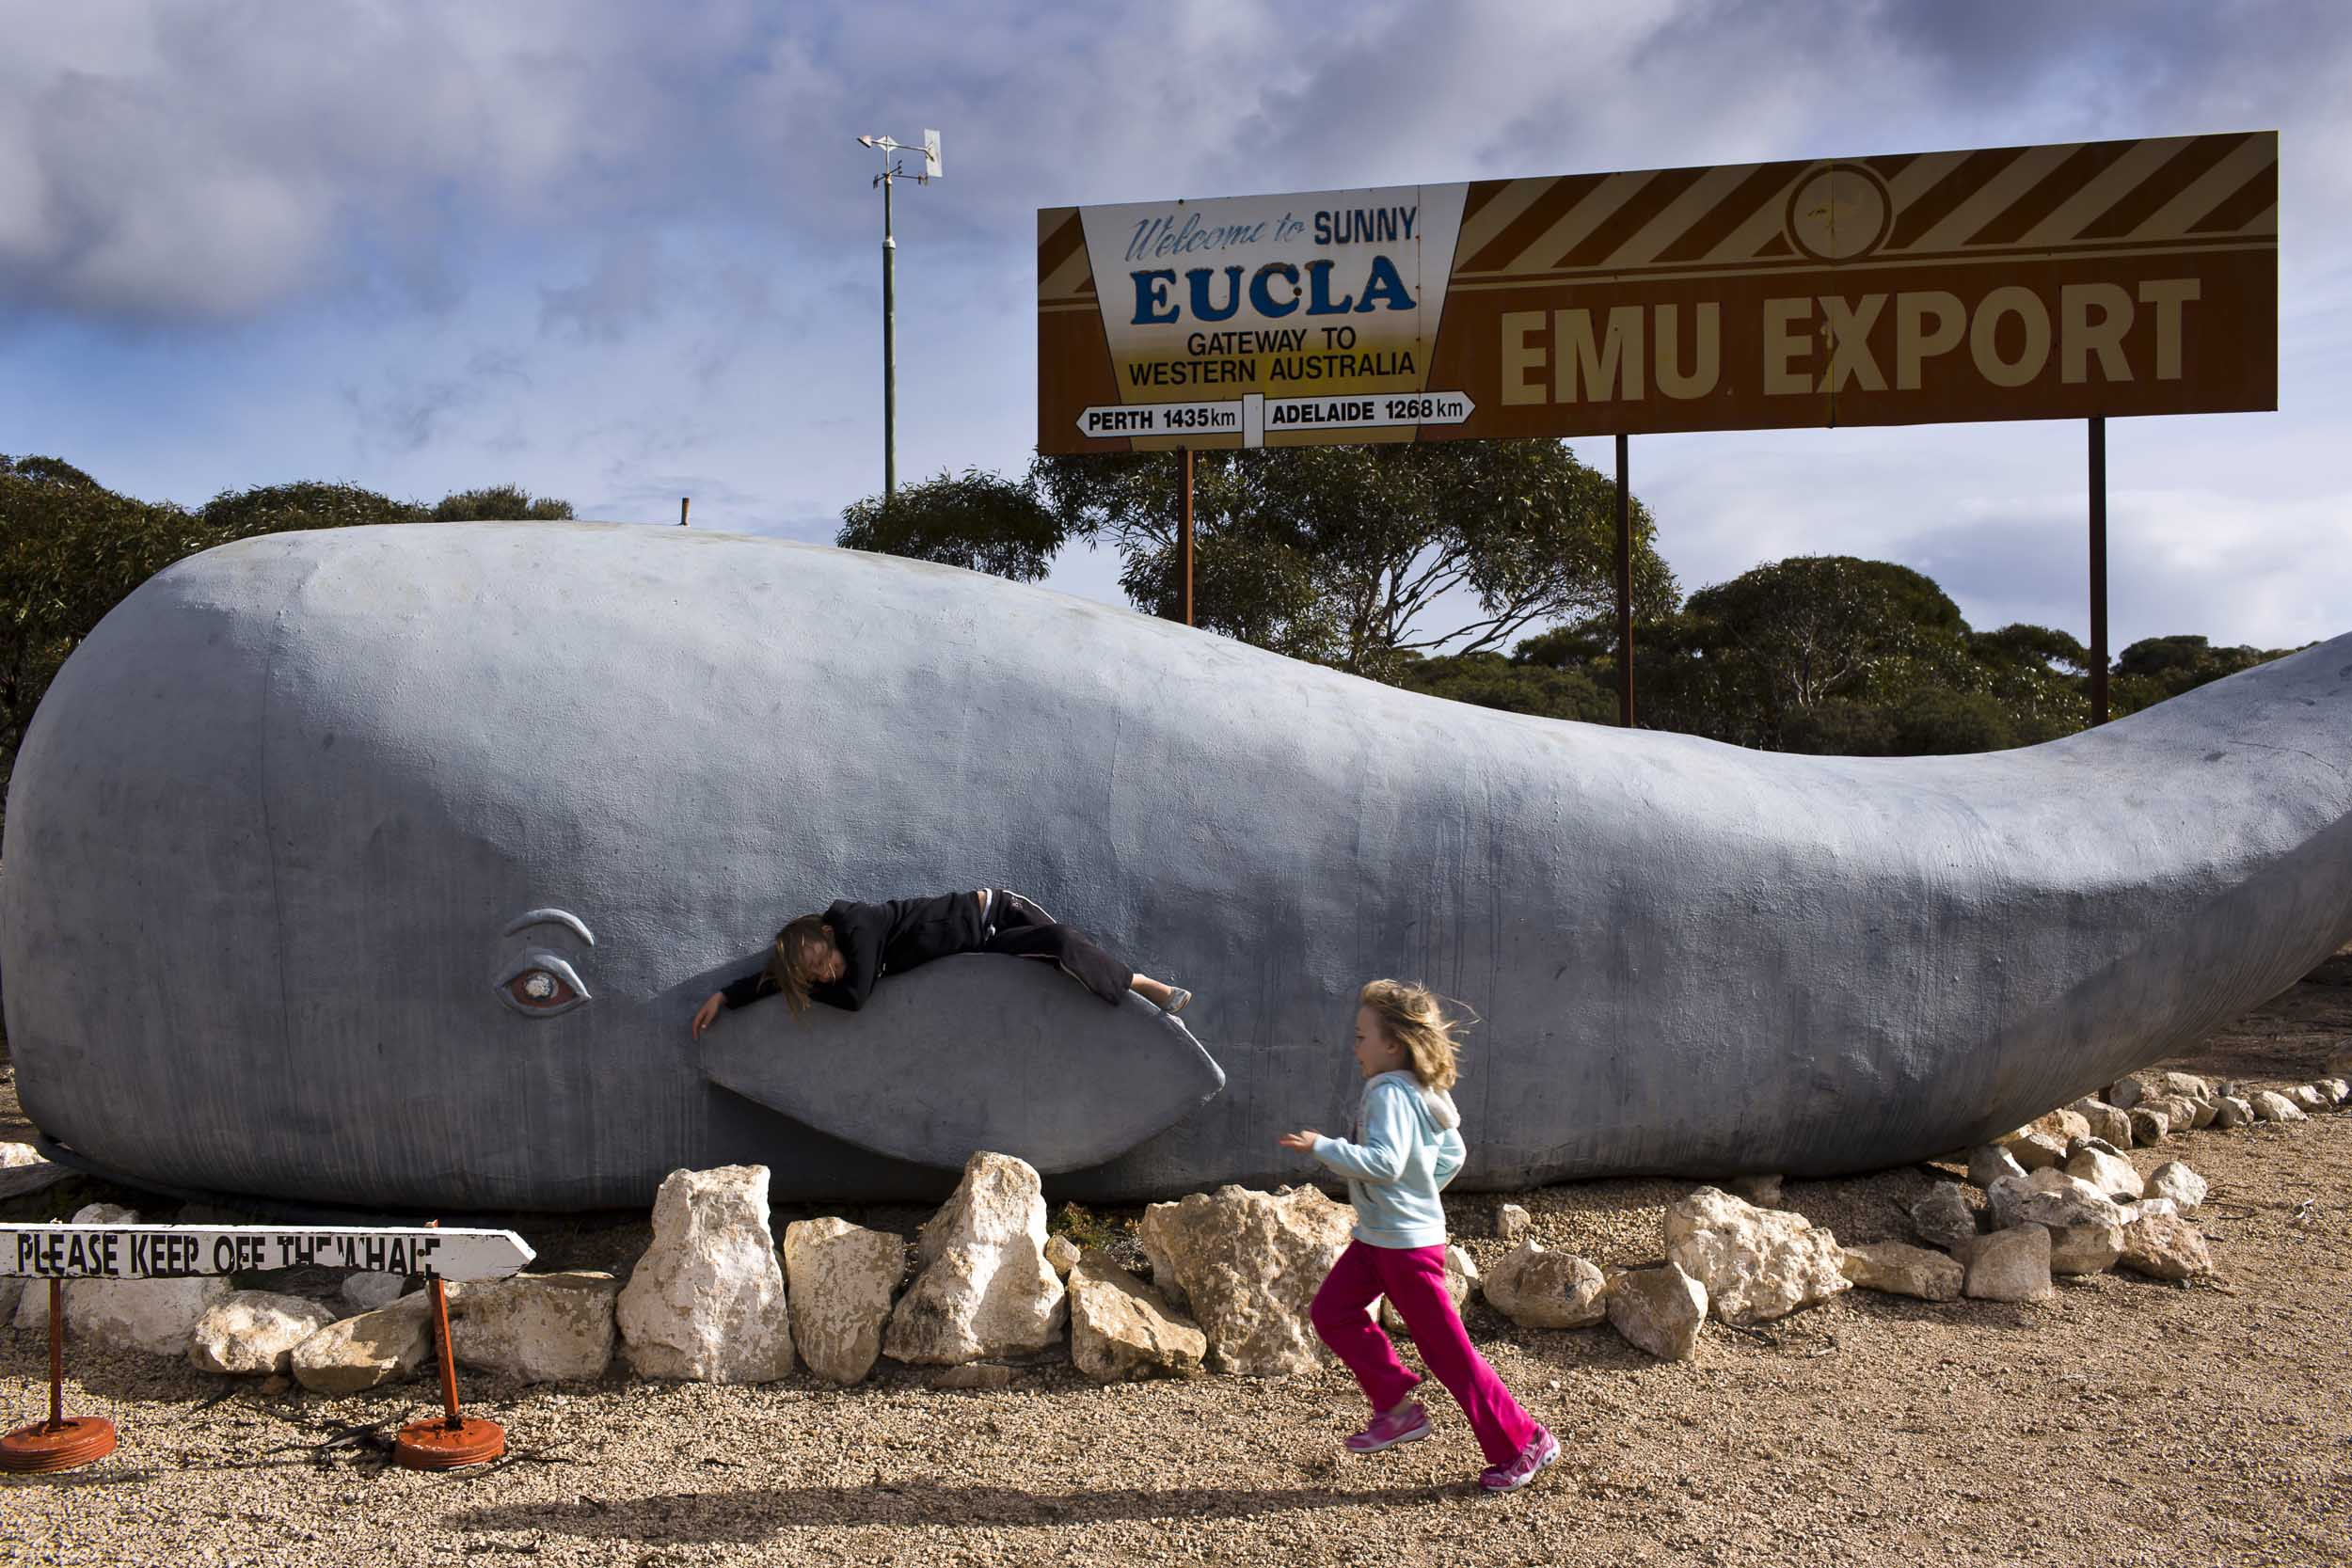 Children play on a whale statue in the Western Australian town of Eucla along the Eyre Highway, Eucla, Western Australia.